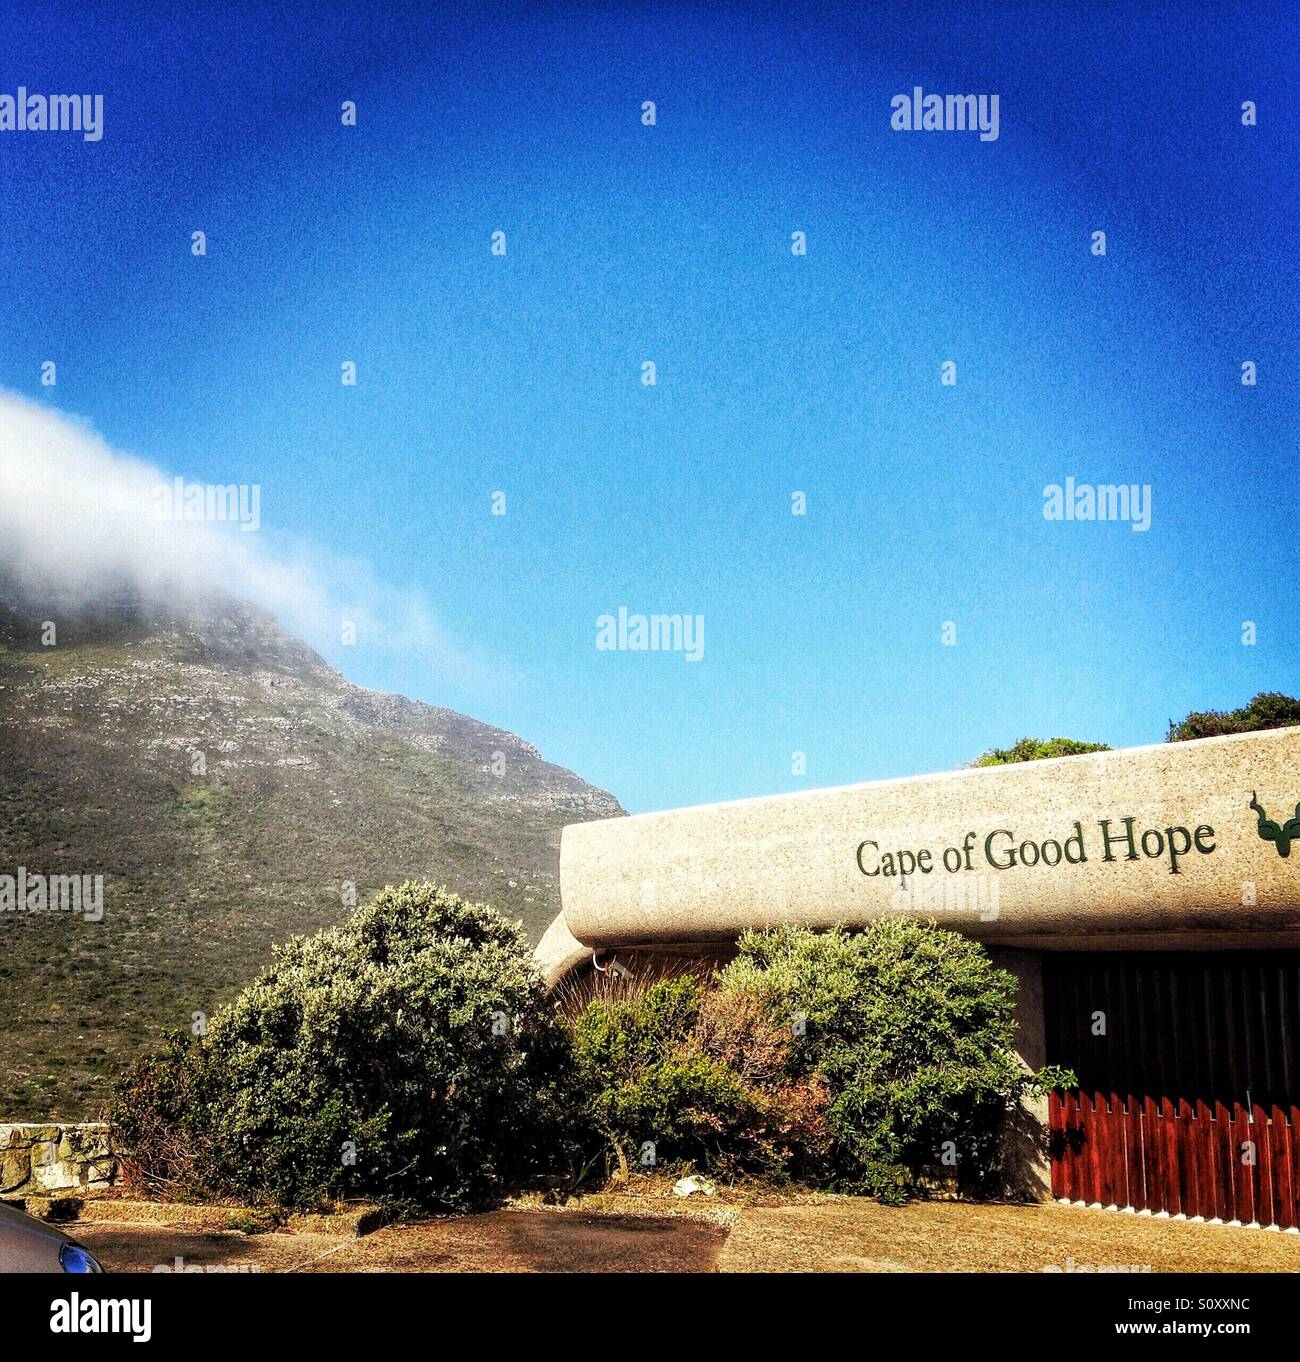 Cape of Good Hope, Cape Town, South Arica - Stock Image